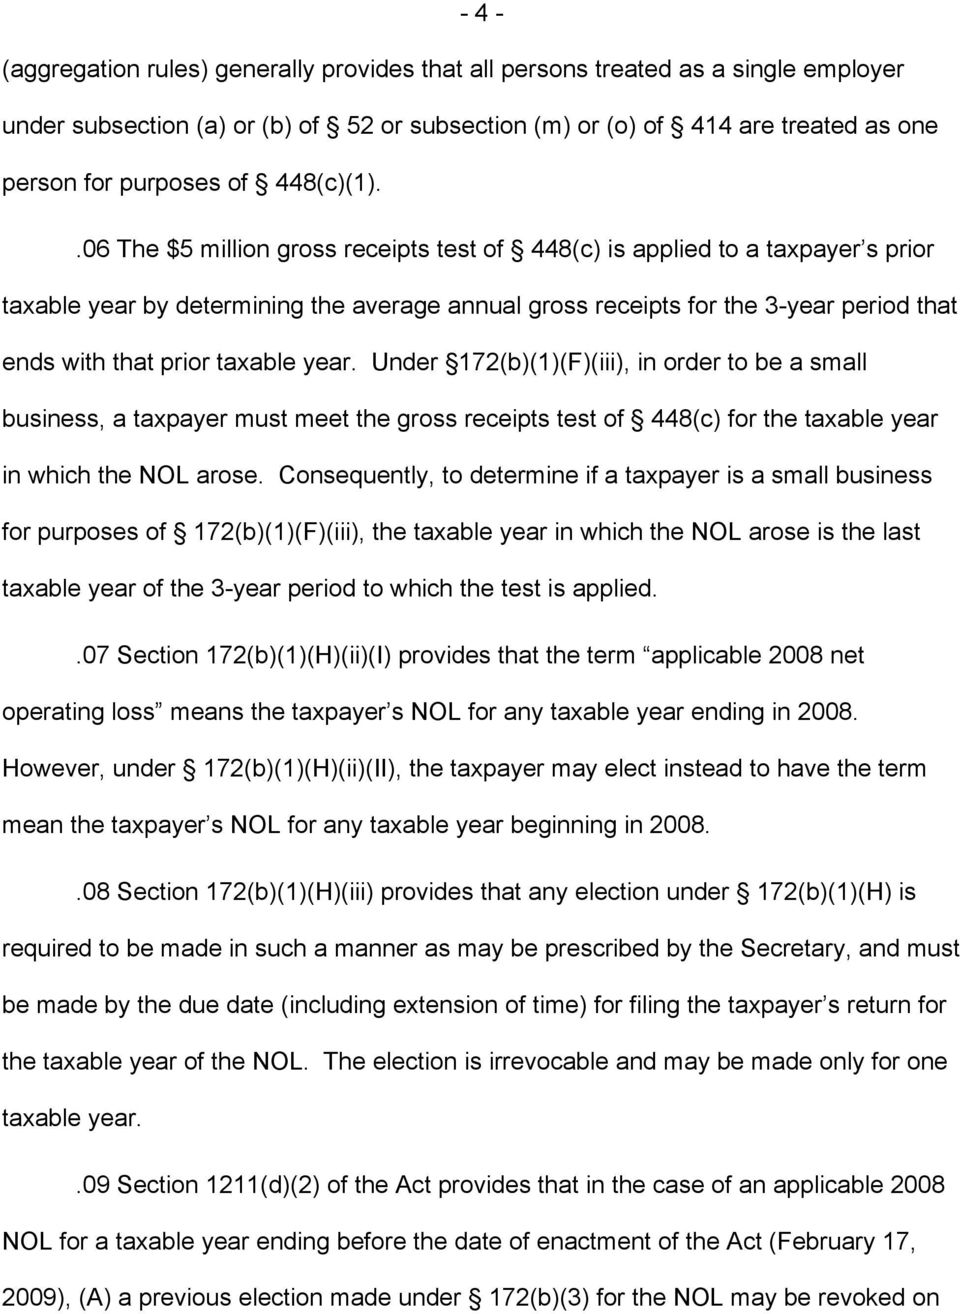 .06 The $5 million gross receipts test of 448(c) is applied to a taxpayer s prior taxable year by determining the average annual gross receipts for the 3-year period that ends with that prior taxable